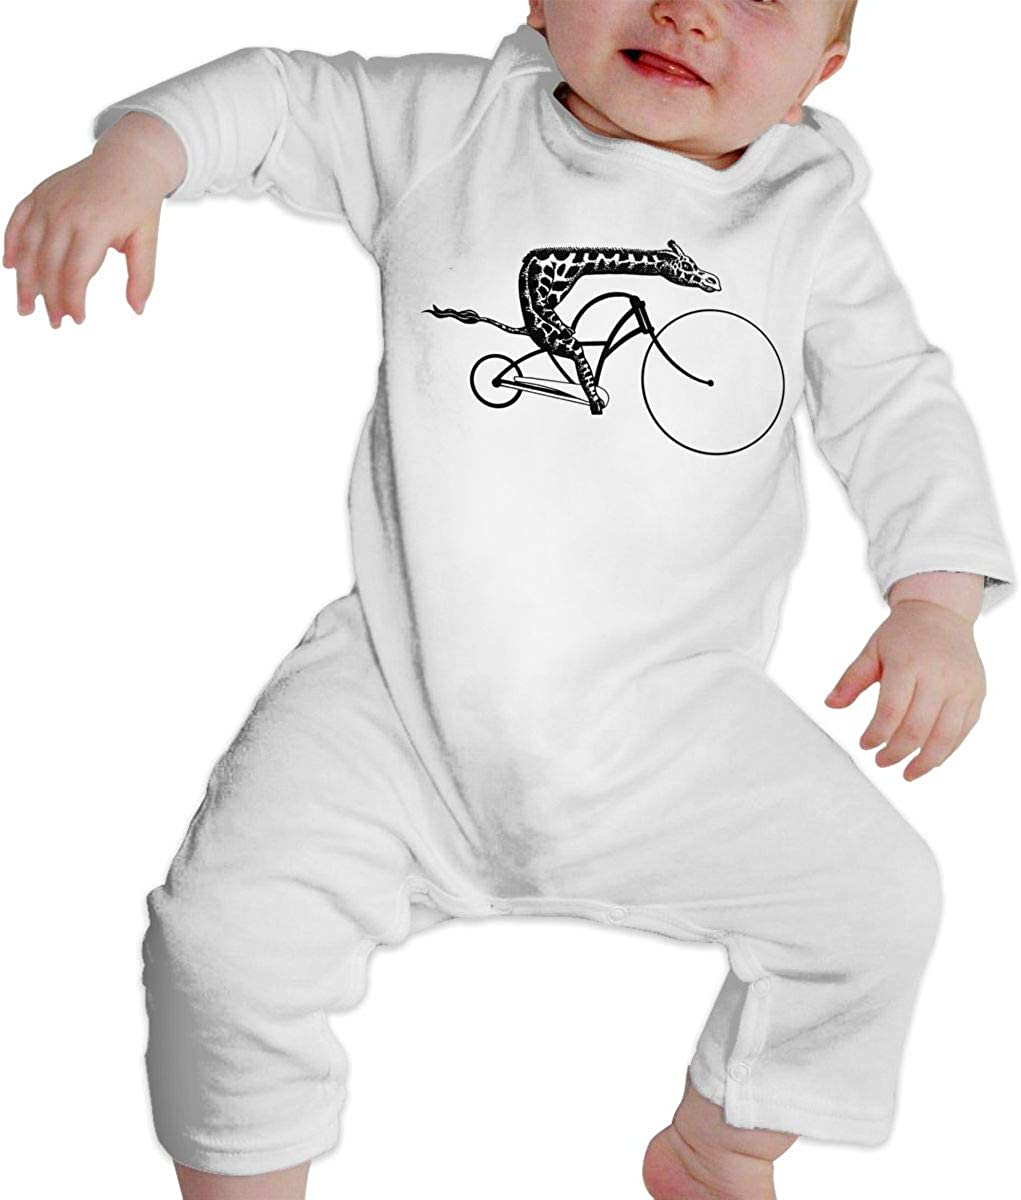 Giraffe On A Bike Printed Newborn Infant Baby Boy Girl One-Piece Suit Long Sleeve Outfits White